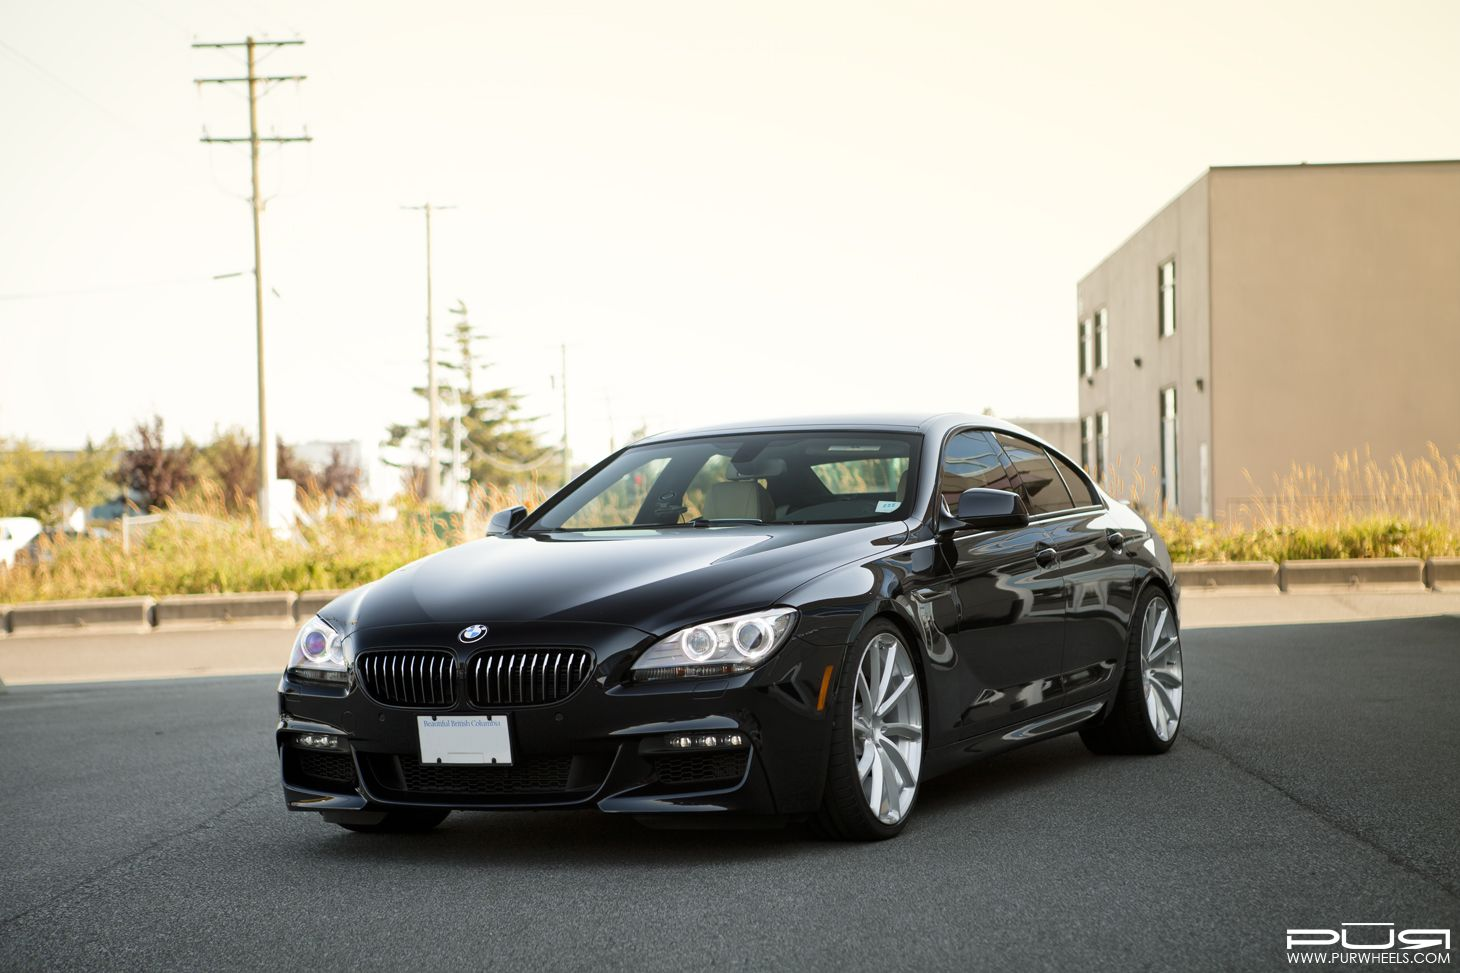 2012 bmw 6 series 650i coupe black sapphire metallic color black - Black Sapphire Bmw 650i With Pur Wheels